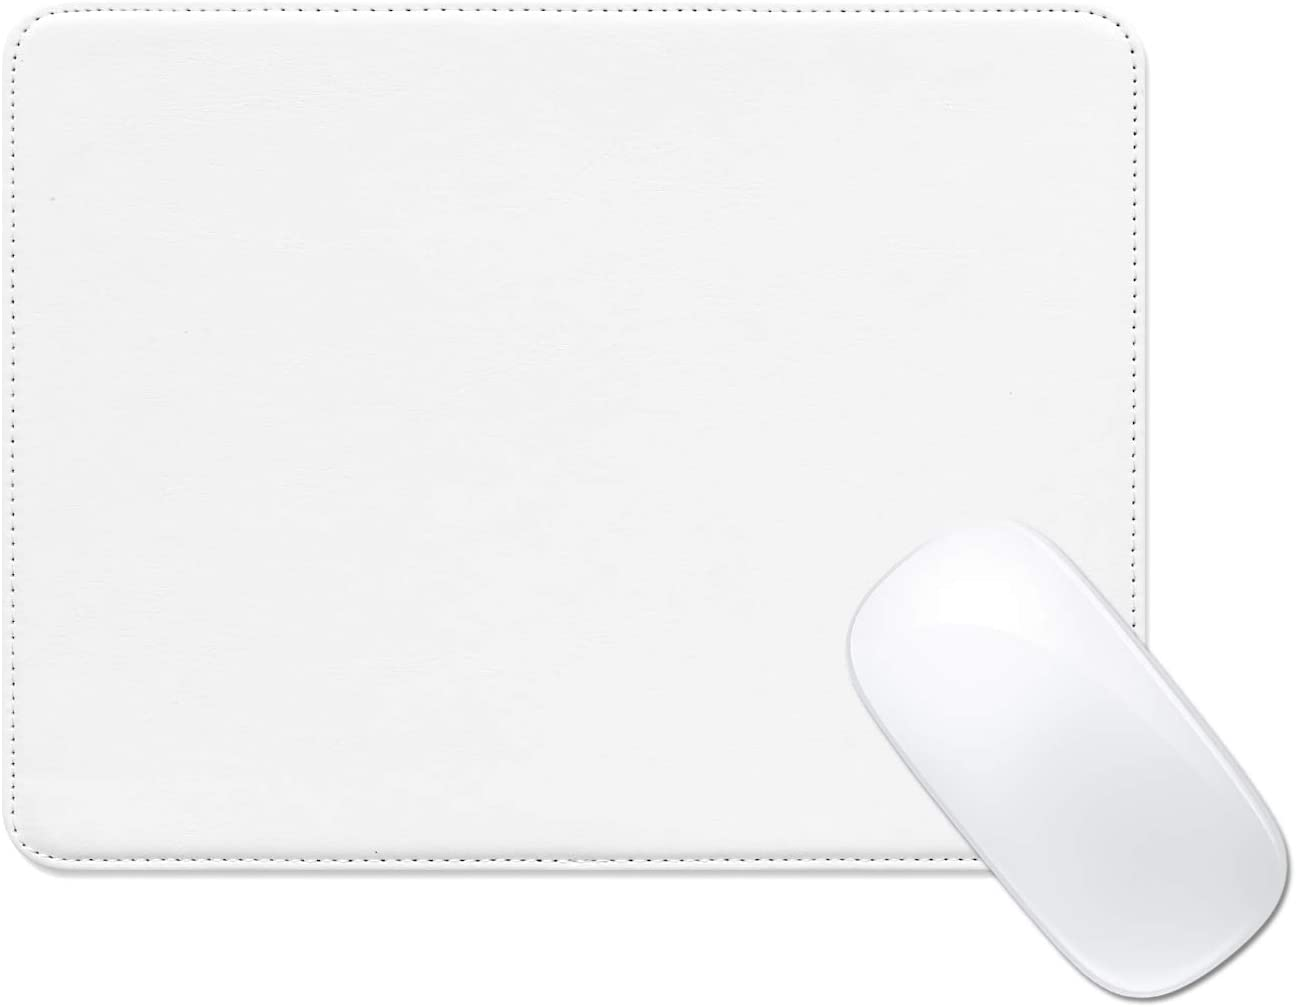 ProElife Mouse Pad Waterproof PU Leather Mousepad Dual-use for Home Office Business, Non-Slip/Noise-Reduction/Elegant Stitched Edge Laptop Computer Mouse Pad 9.8 x 7.5 inch (White)